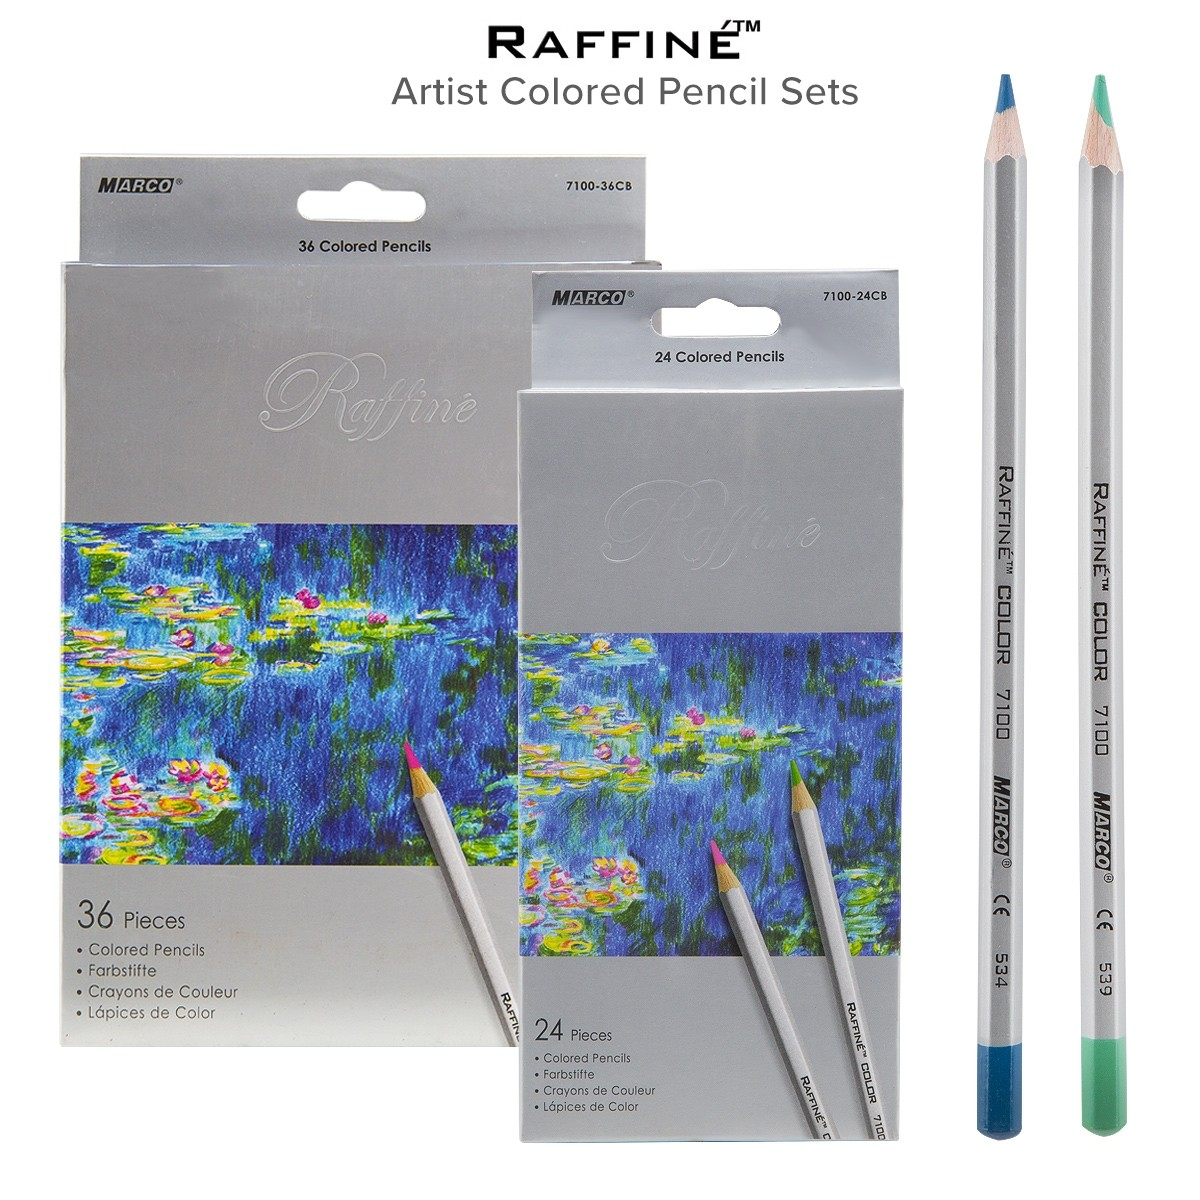 Raffiné Artist colored pencil sets